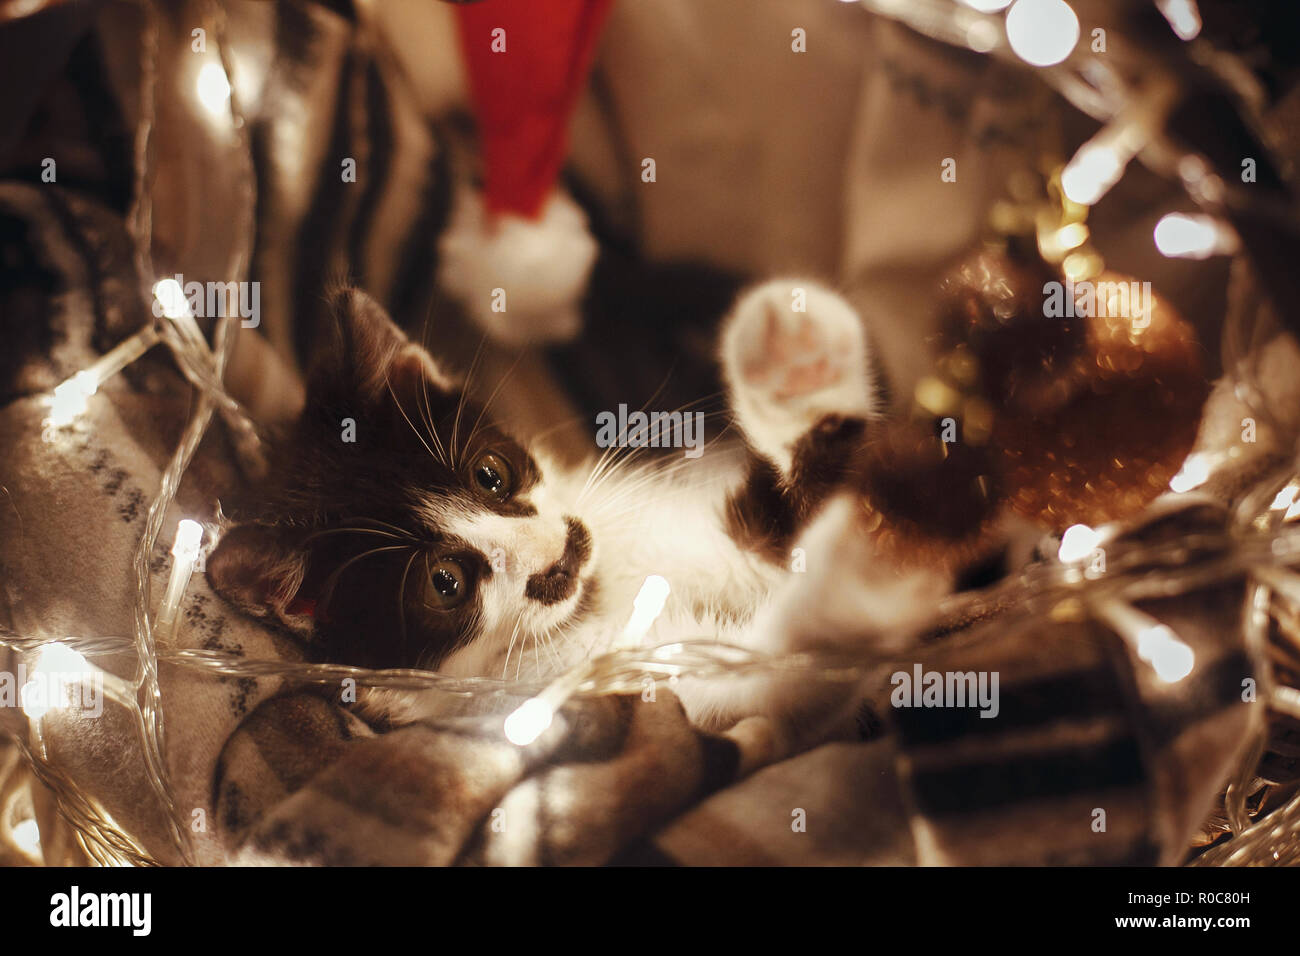 Cute kitty playing with ornaments in basket with lights under christmas tree in festive room. Adorable funny kitten with amazing eyes. Merry Christmas - Stock Image